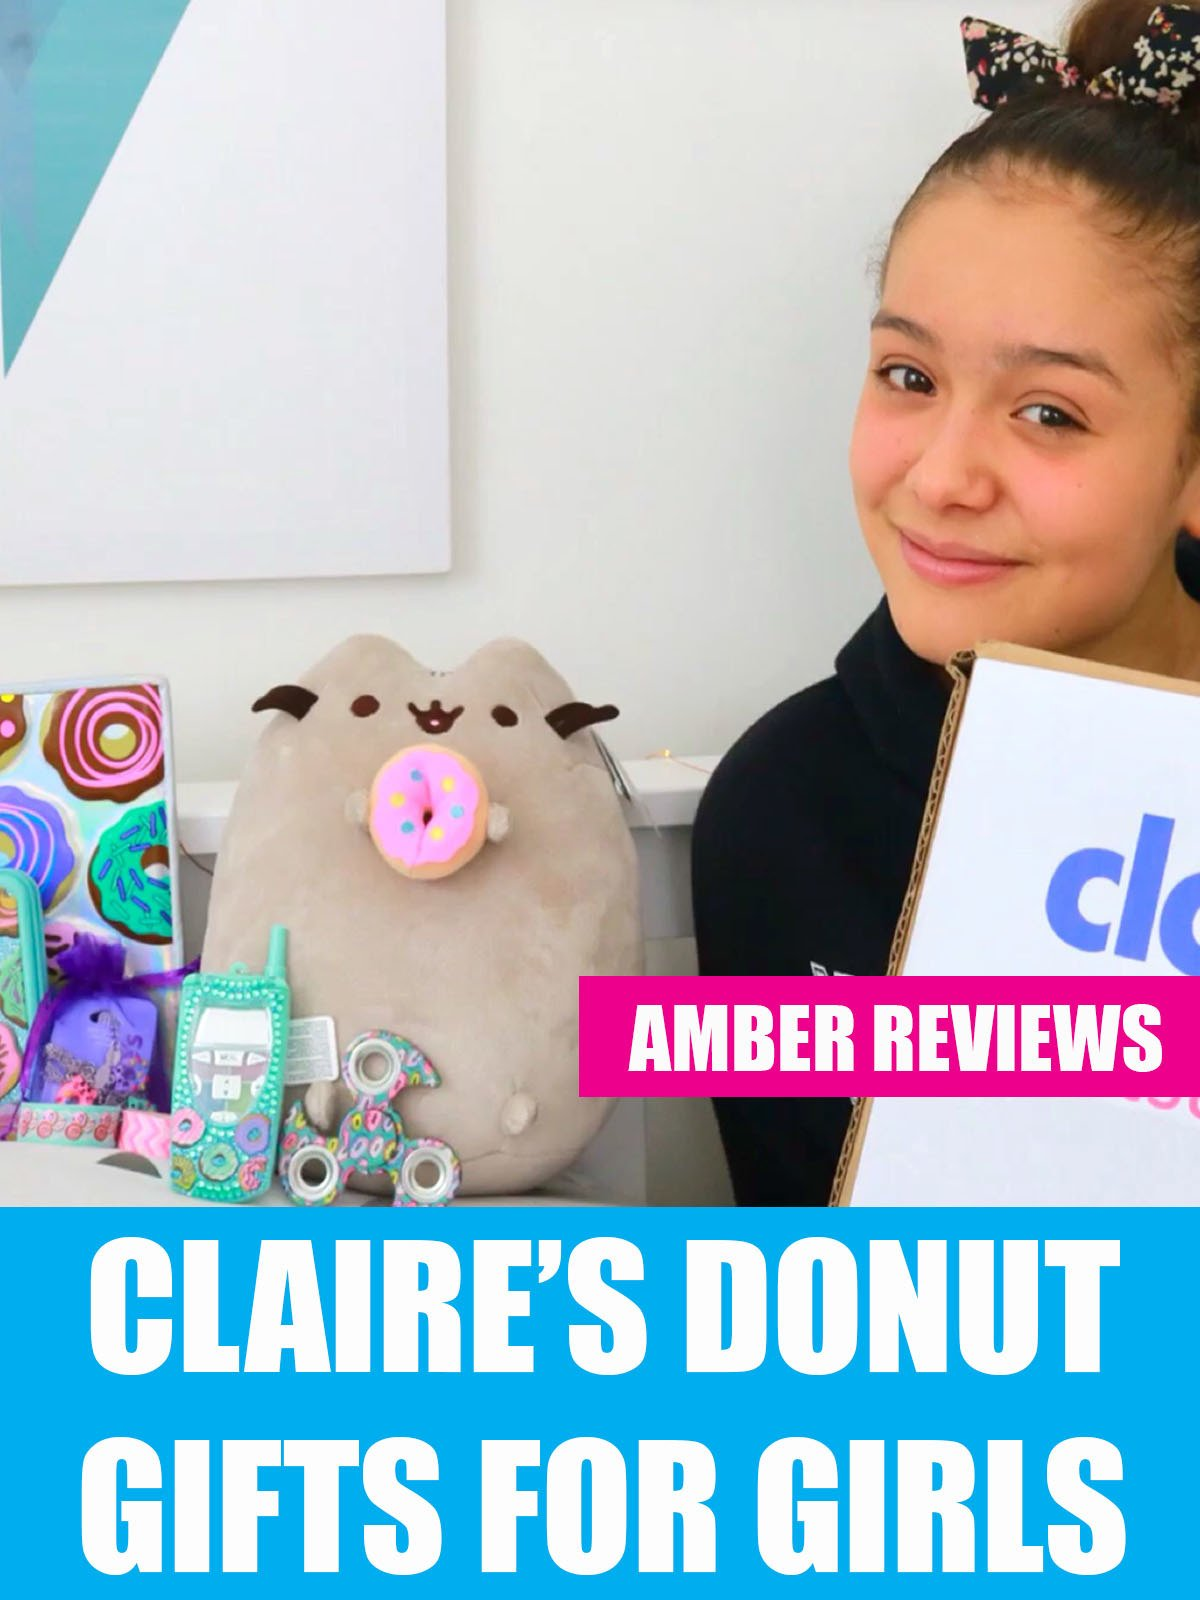 Amber Reviews Claire's Donut Gifts For Girls